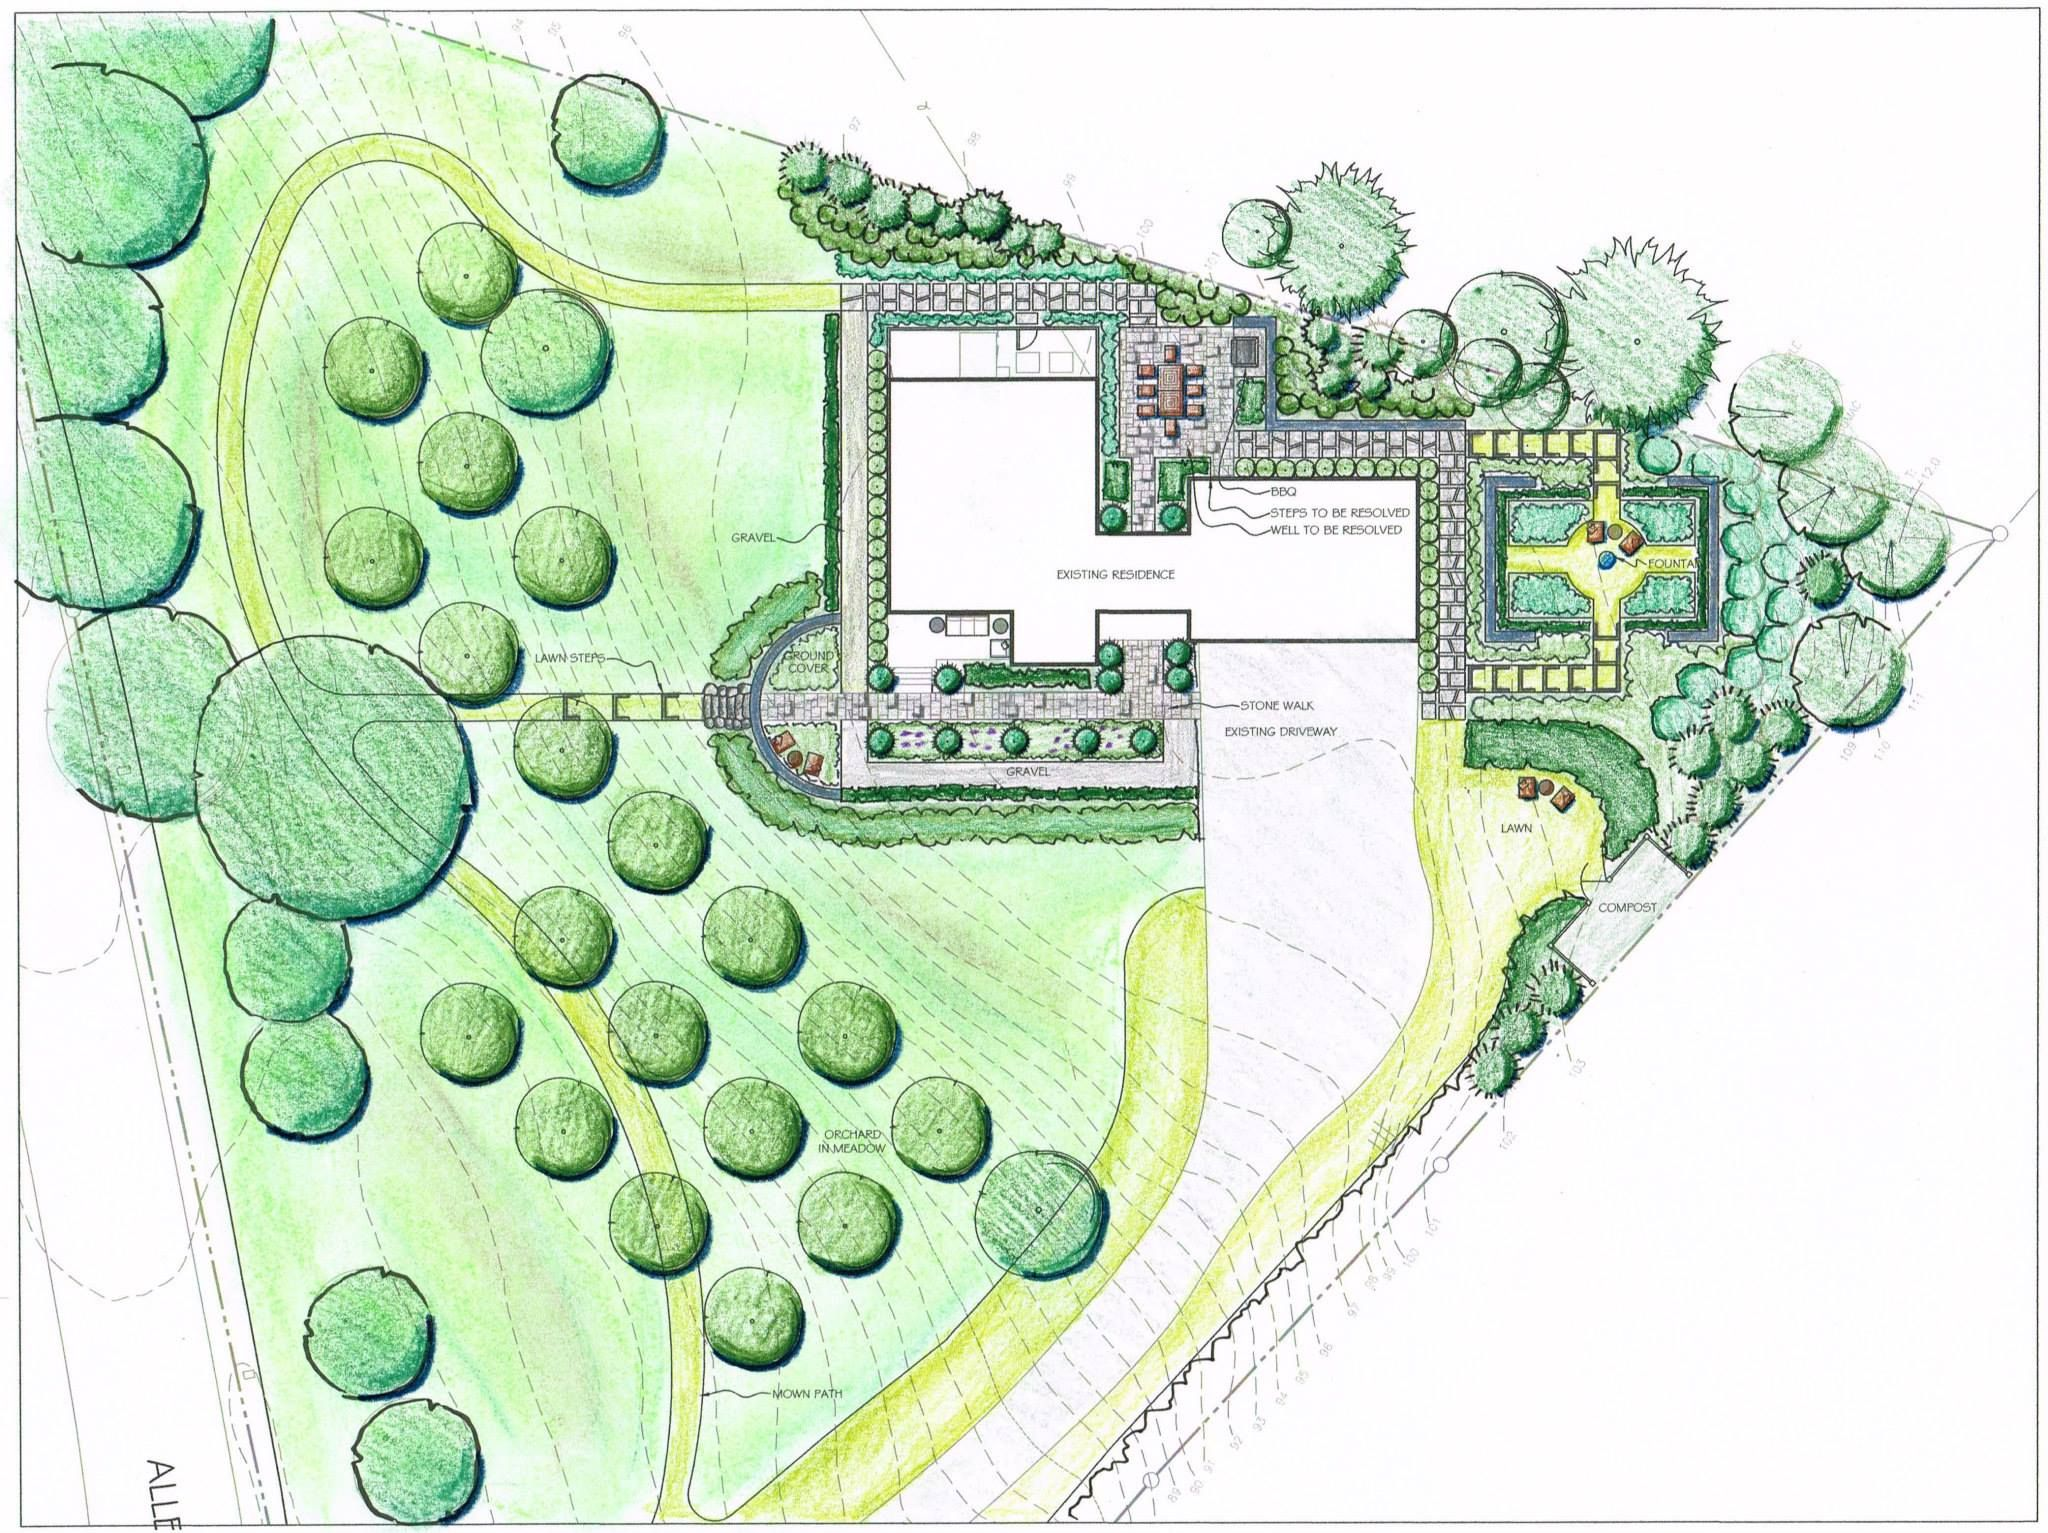 art drawing rendering colored pencil landscape garden design illustration - Garden Design Drawing